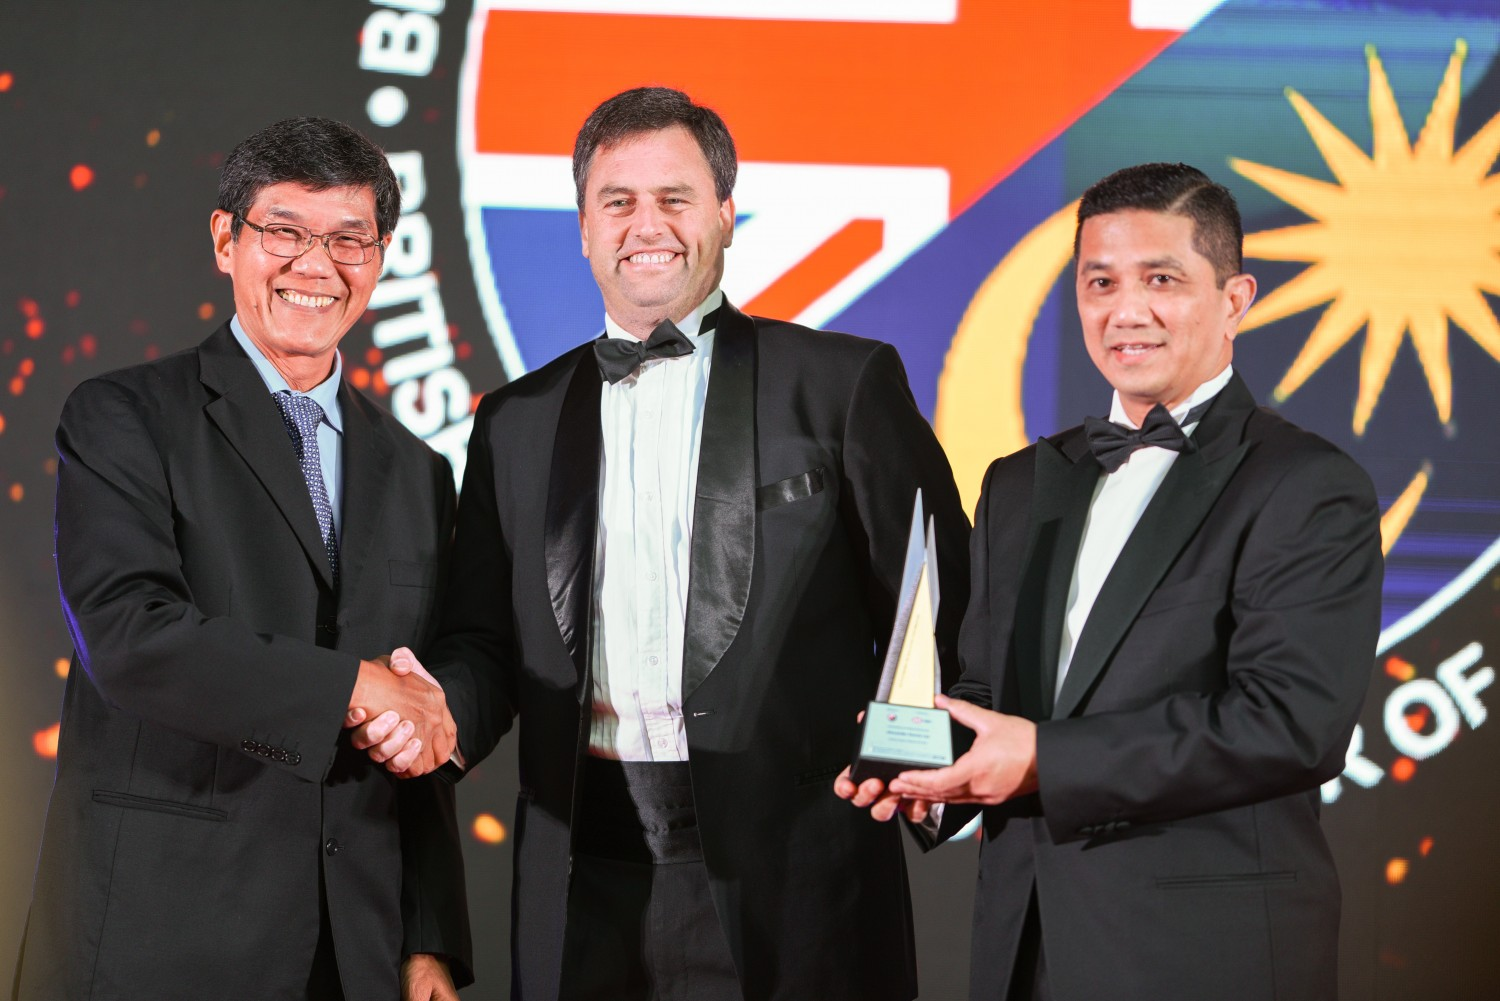 Picture L-R: Mr. Kee Sin Yoong Director of TMA Sdn Bhd and Mr. Andrew Boulton, Customer Development & Technical Director of Alexander Dennis Ltd receiving the award from YB Dato' Seri Azmin Ali, Minister of Economic Affairs